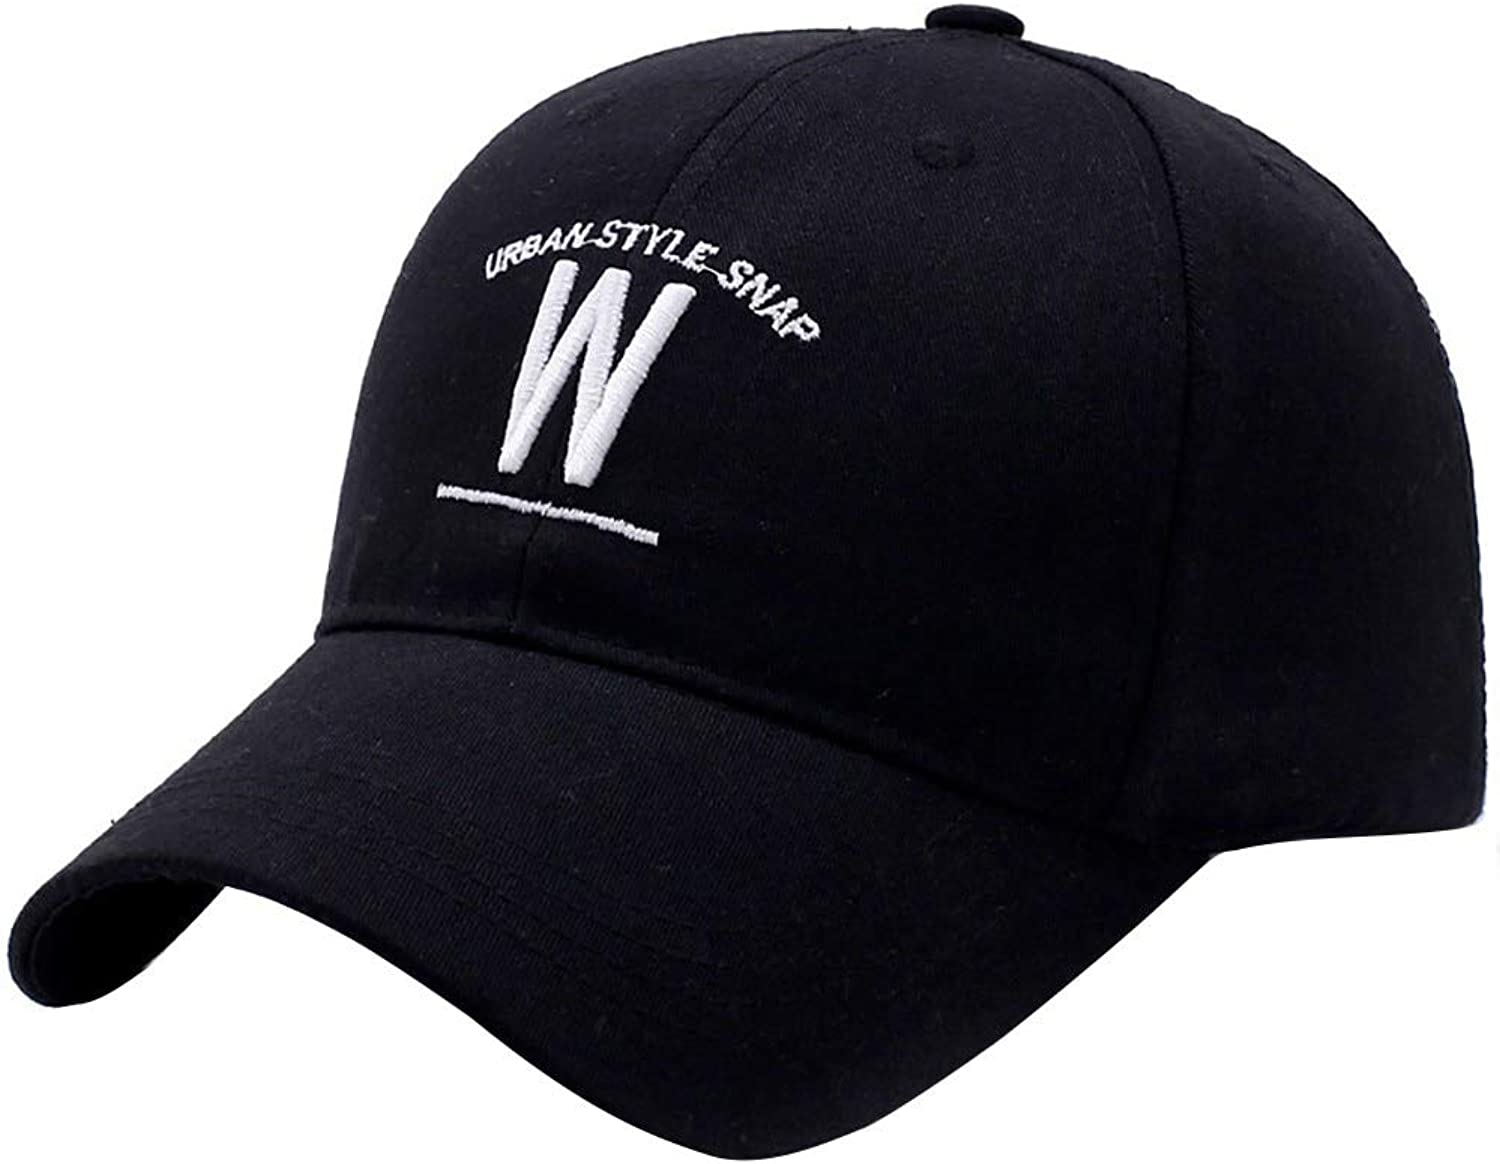 AAMOUISE Baseball Cap Summer Fashion Solid color Men Women Letter Hats Printing hat reached Waterproof Adjustable Cotton Outdoor hat